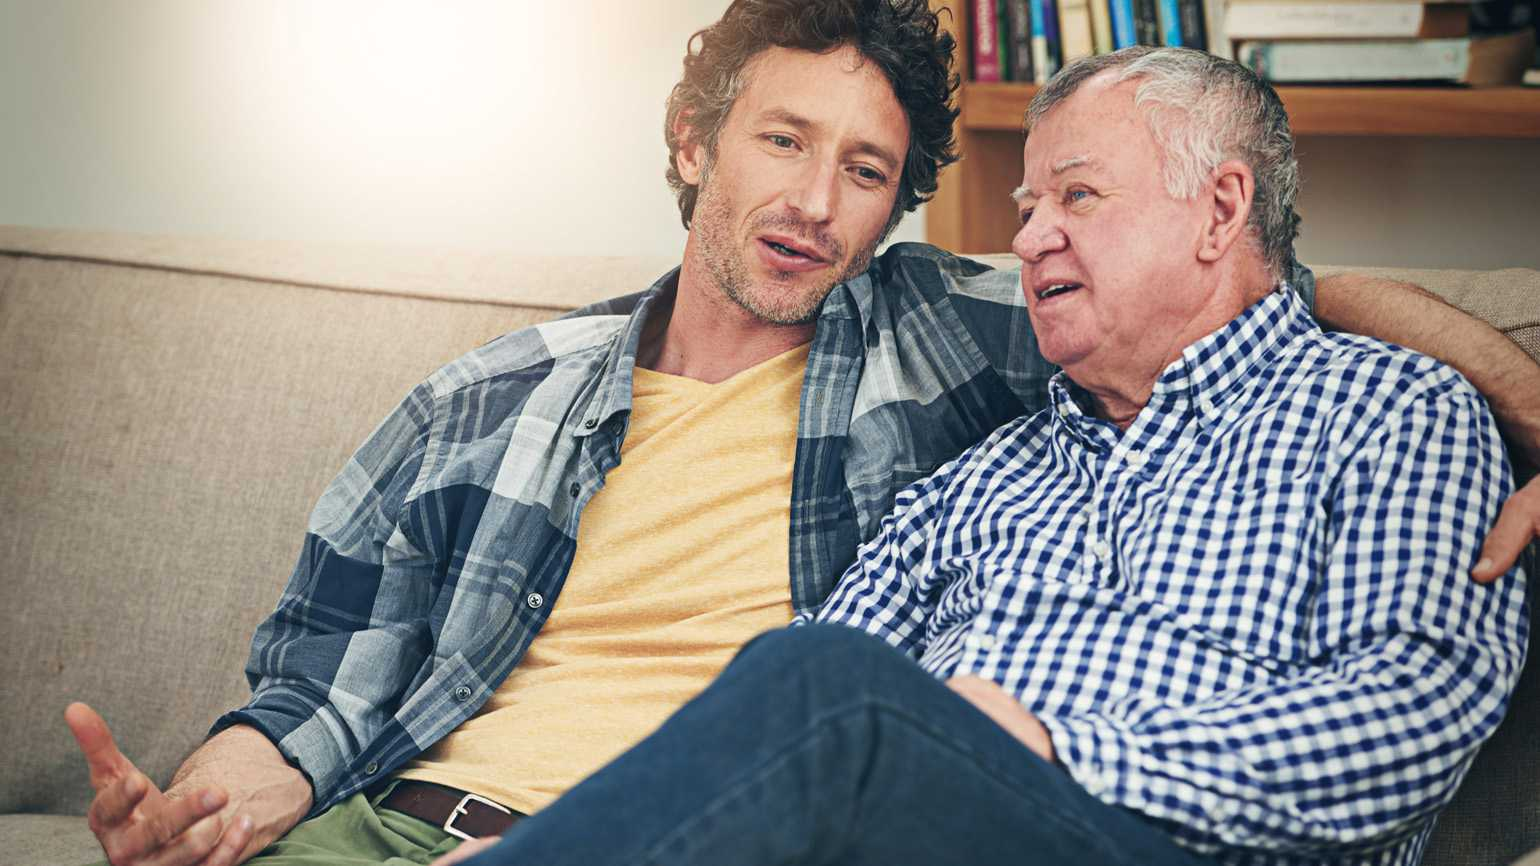 A caregiver has a sit down conversation with his senior father.